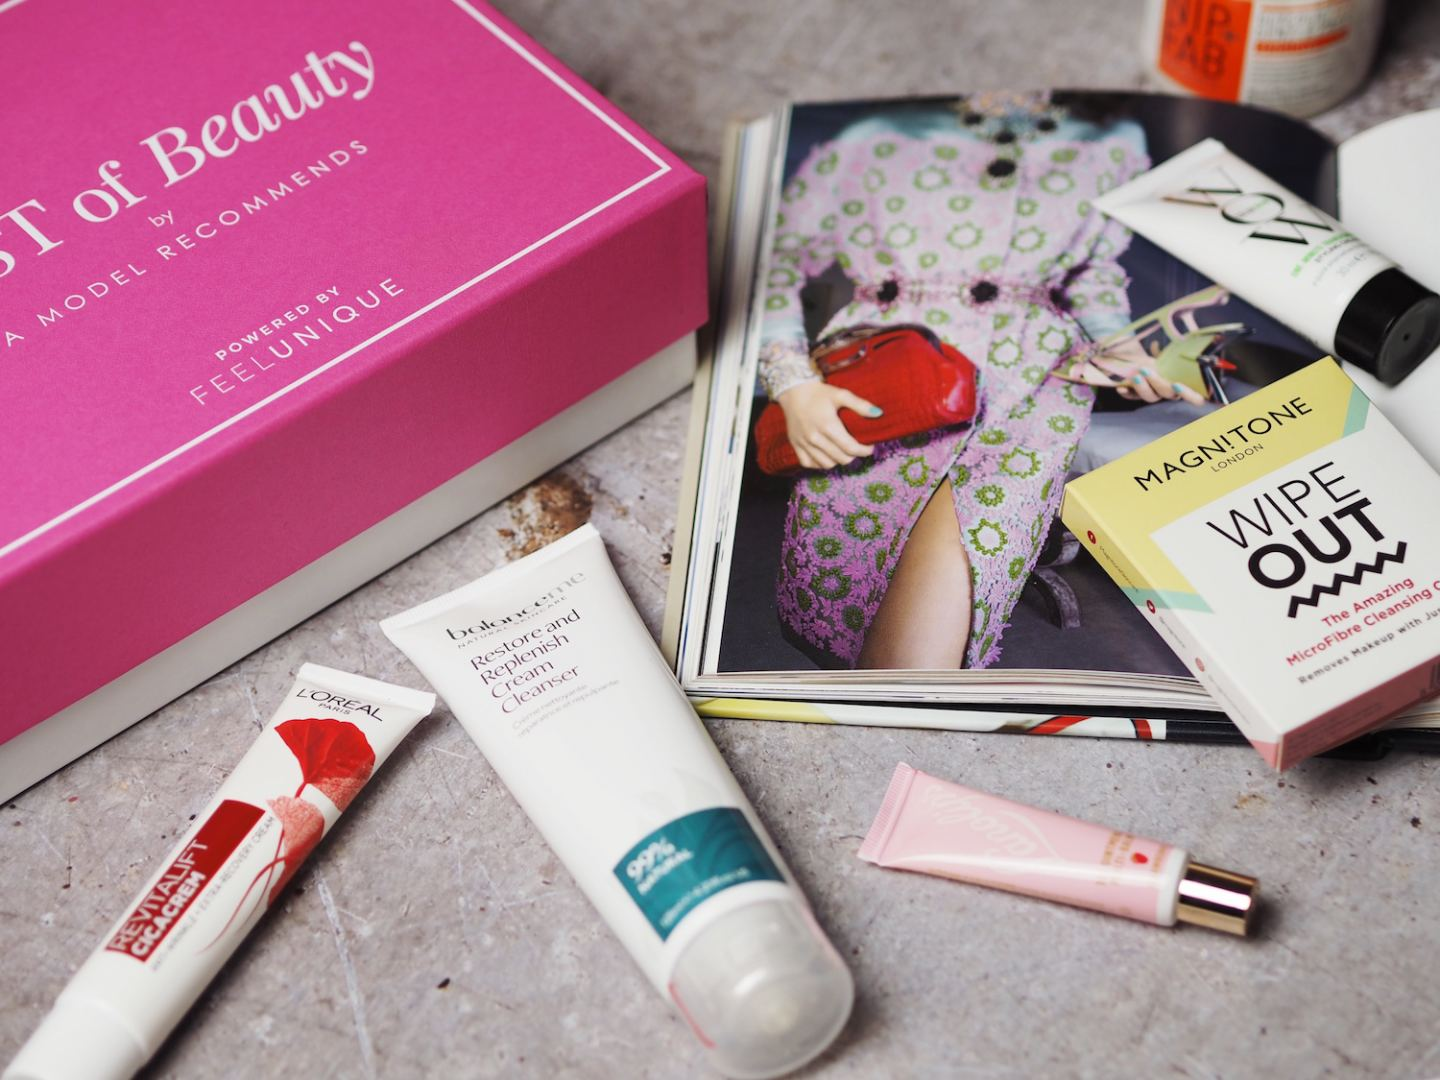 feel unique feelunique beauty box powered by beauty subscription box graet value ruth crilly a model recommends